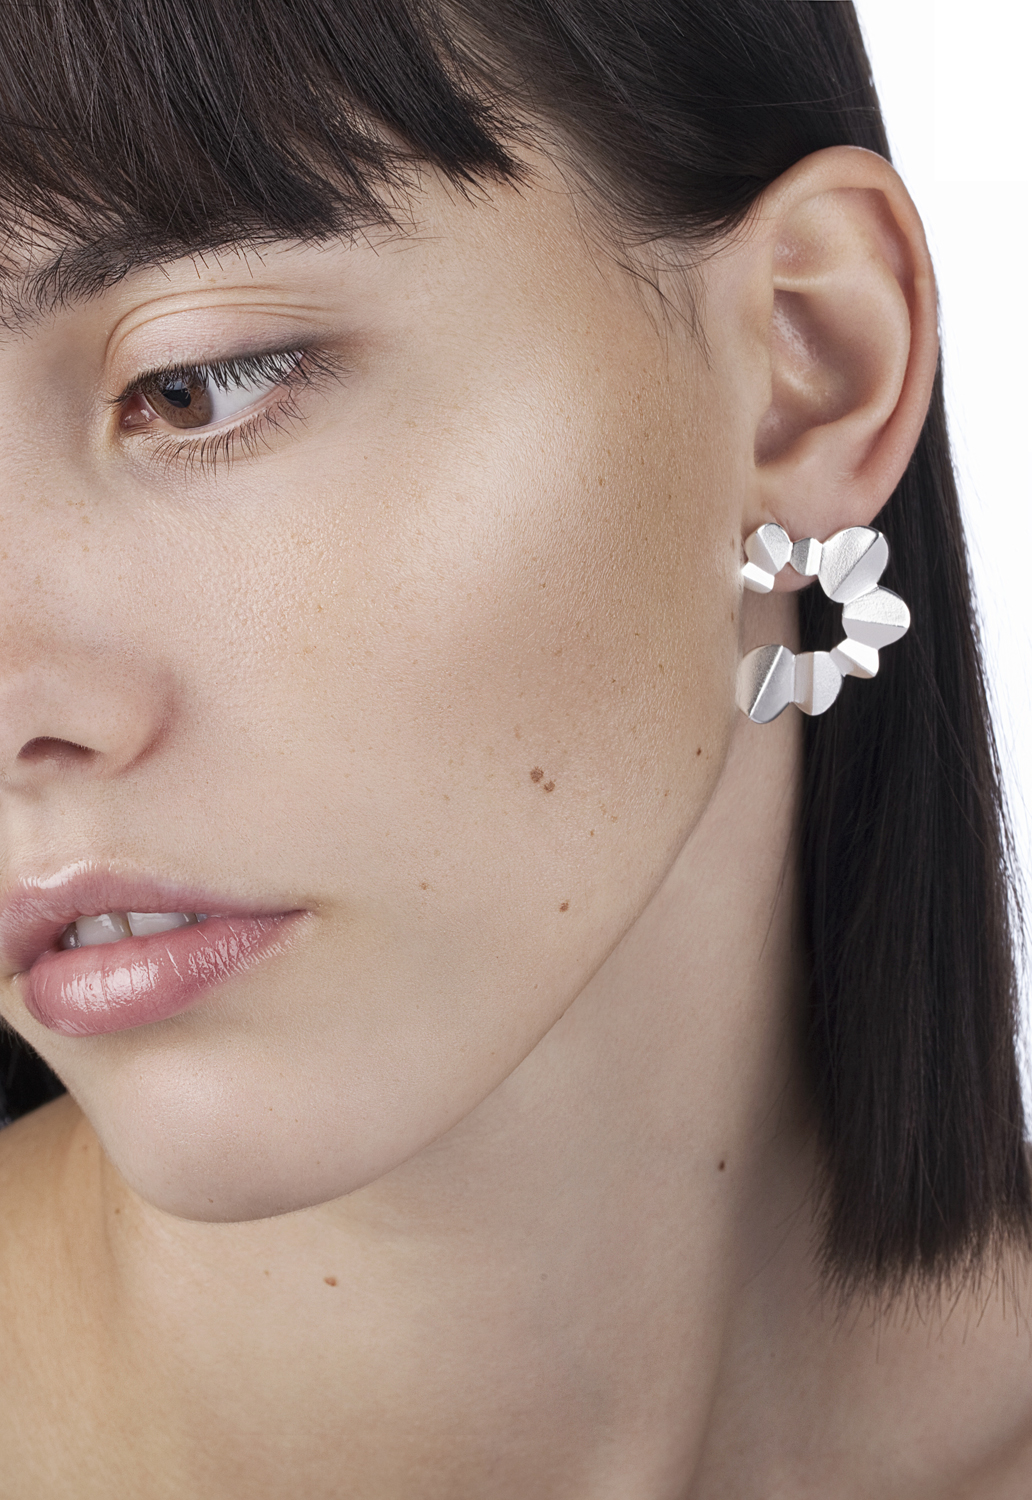 #1036 Nanga Parbat medium earrings